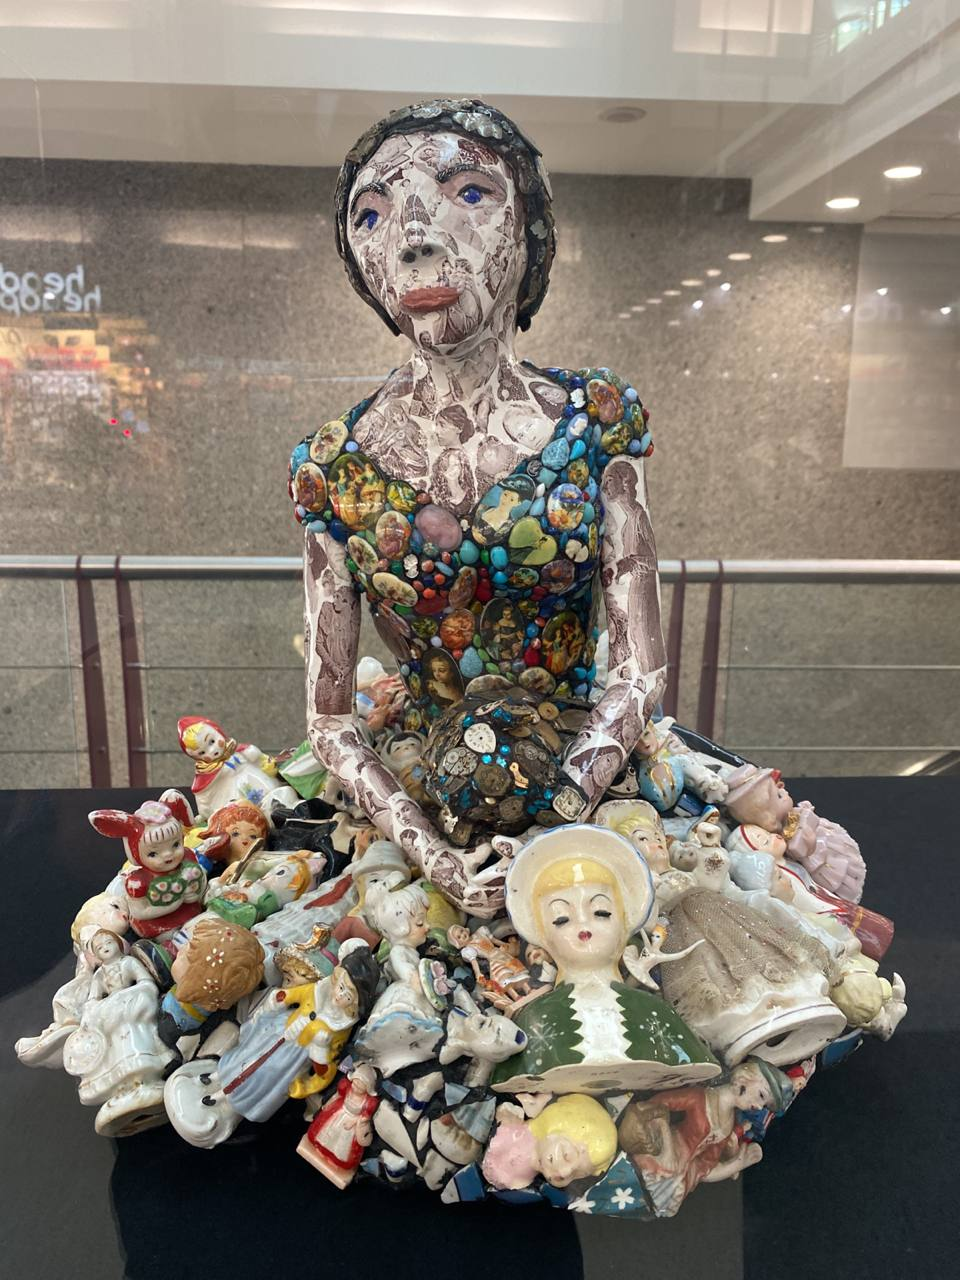 Amazing Sculptures by Mary Engel at the Atlanta Airport